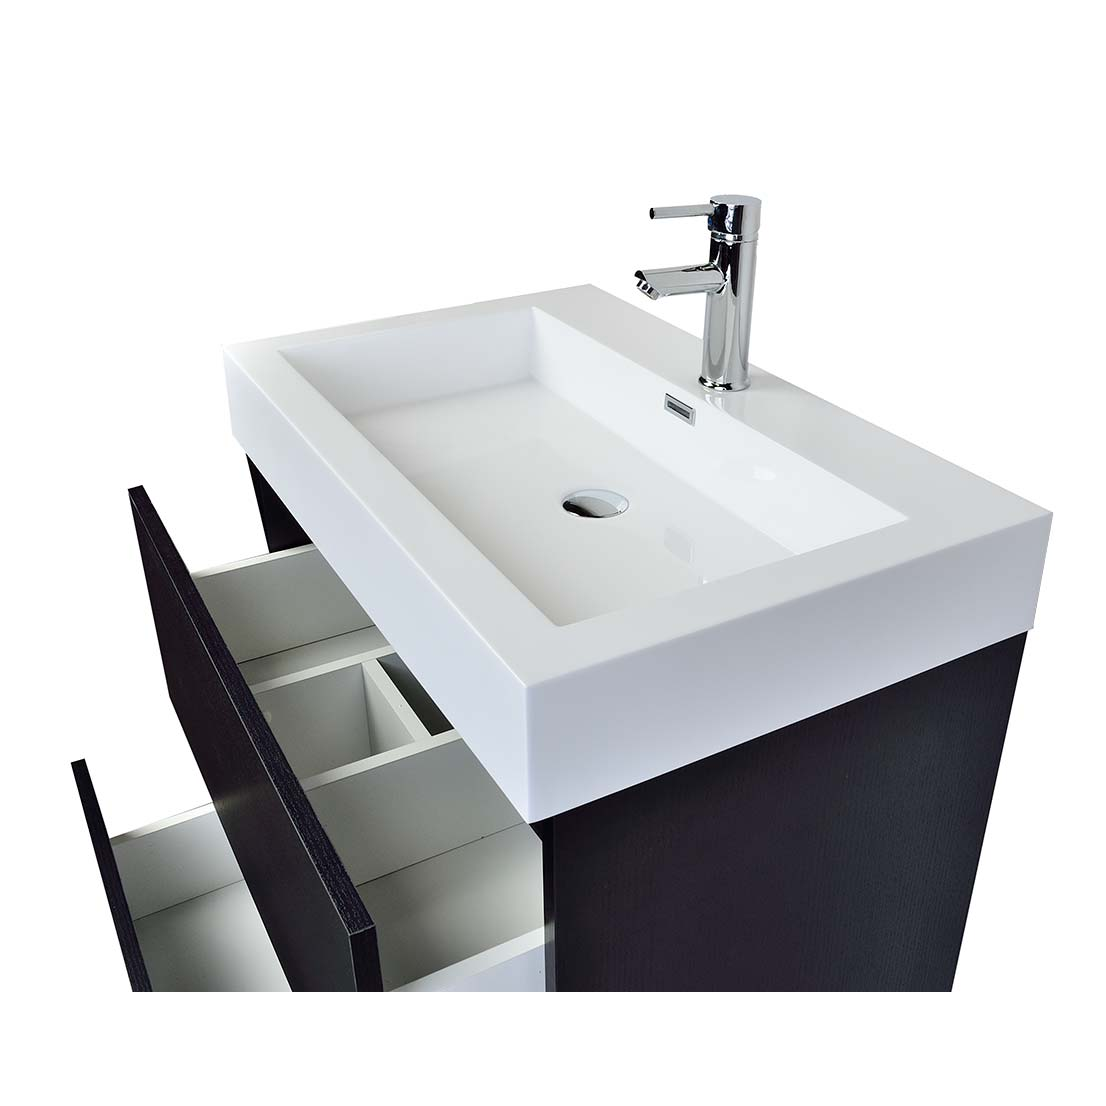 29 5 contemporary bathroom vanity black tn ly750 bk - Contemporary european designer bathroom vanities ...